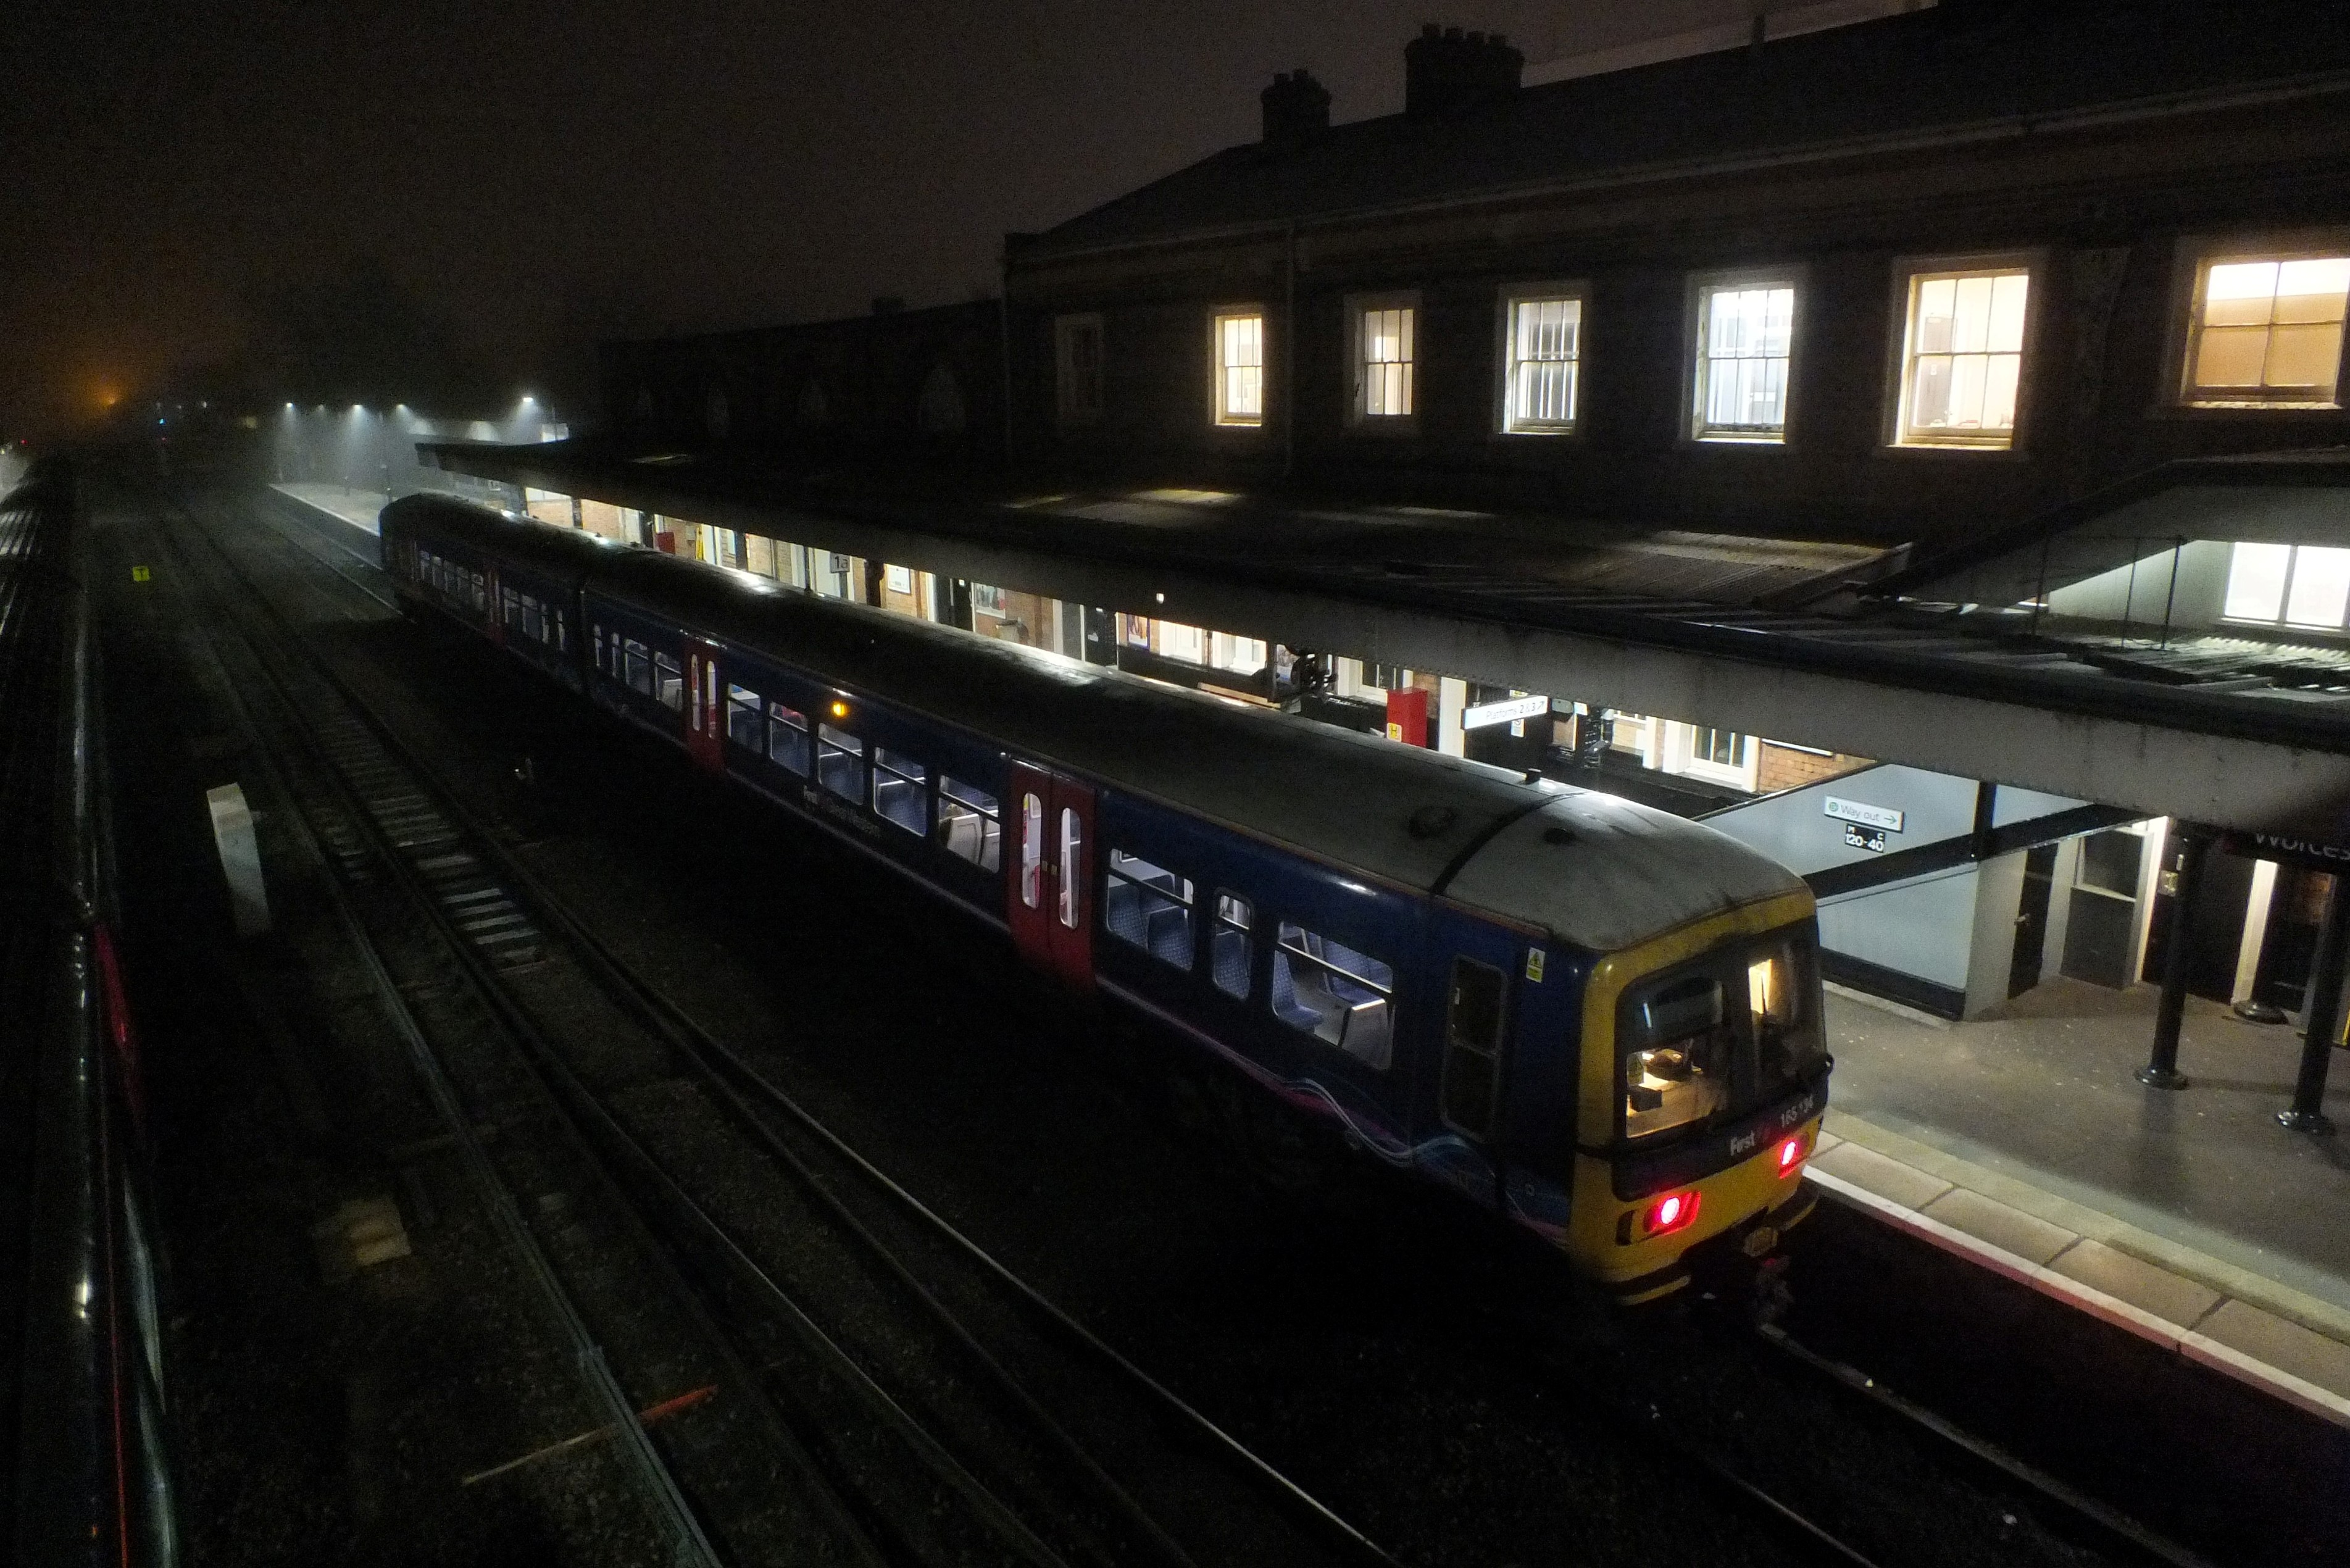 19 December 2017 Shrub Hill 001.jpg